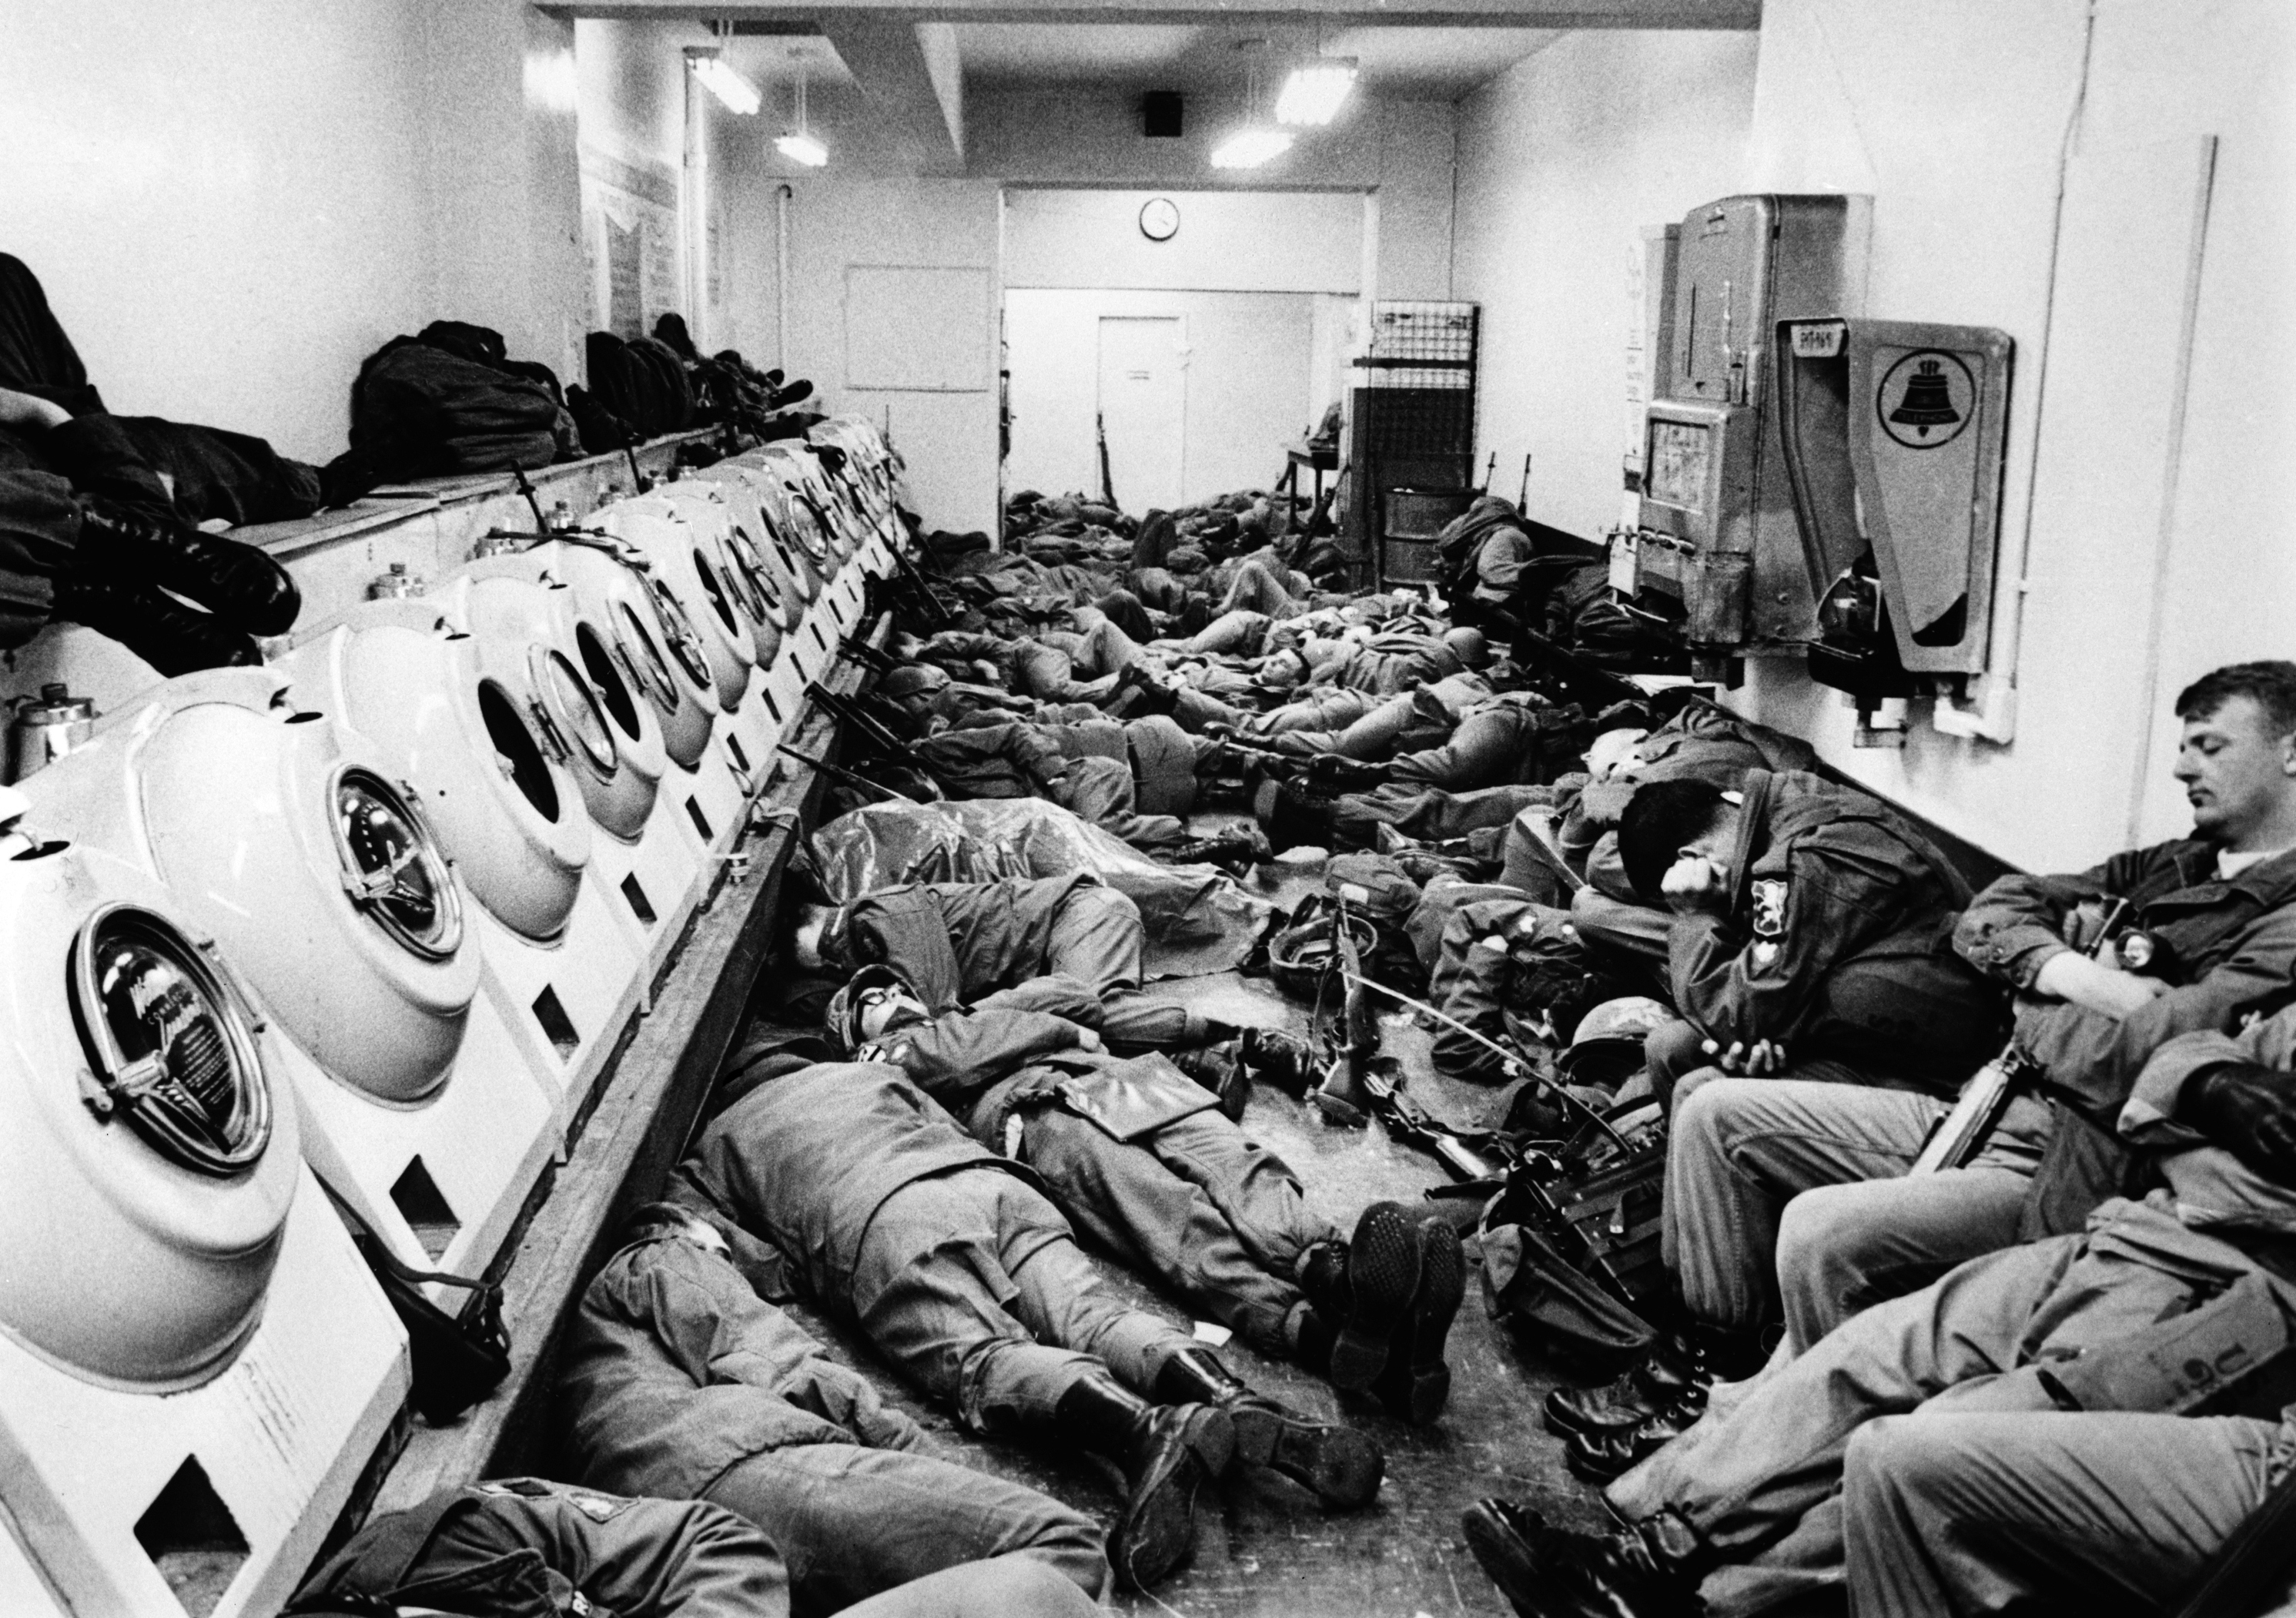 Soldiers in DC Sleep in Laundromat